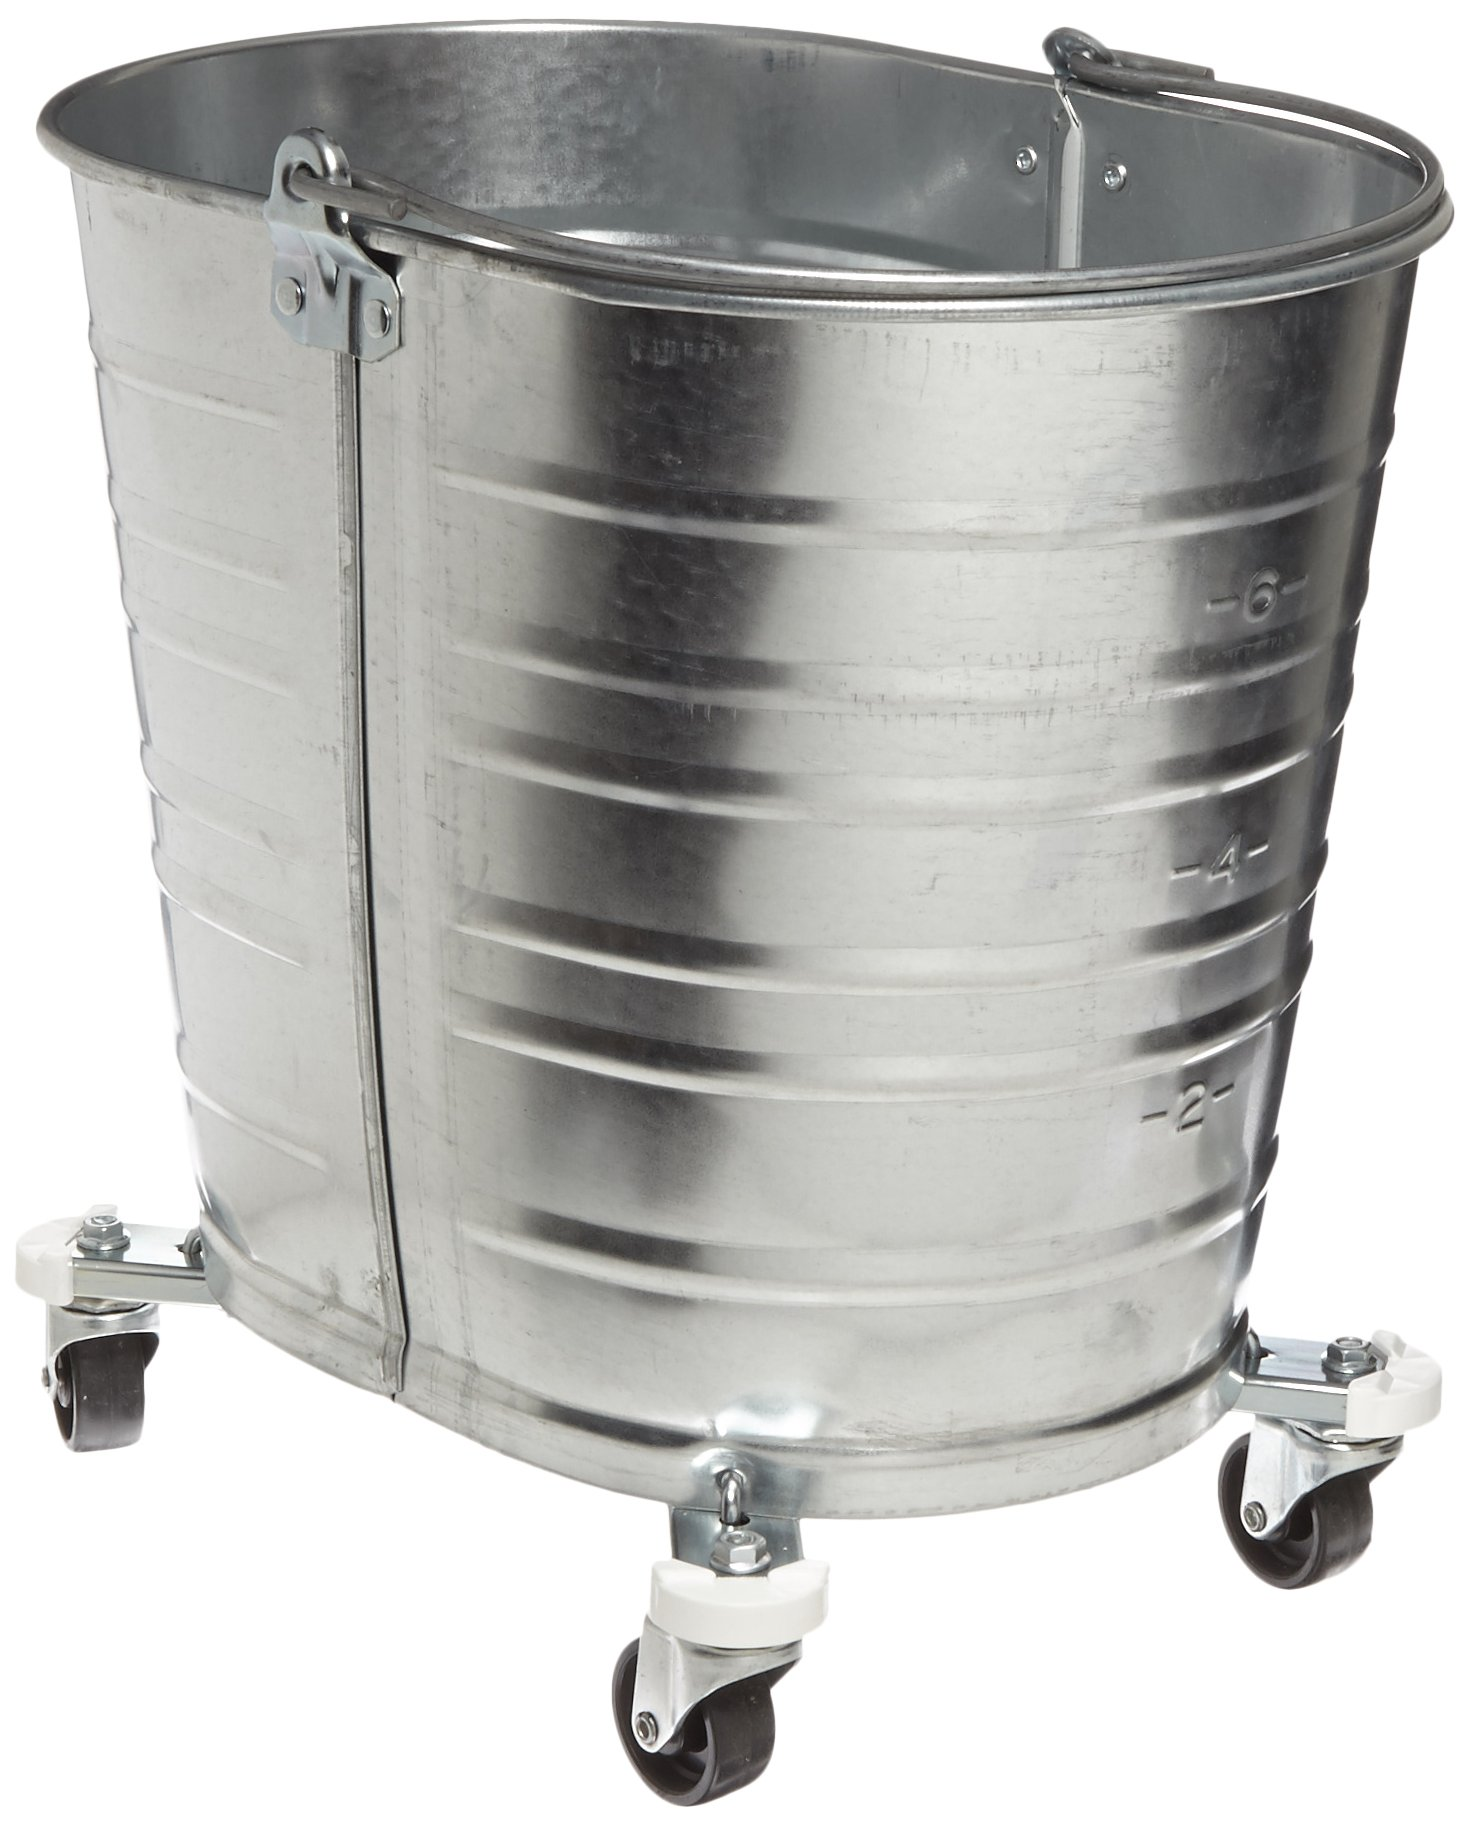 Impact WH350 Oval Galvanized Steel Bucket with 2'' Casters, 35 qt Capacity